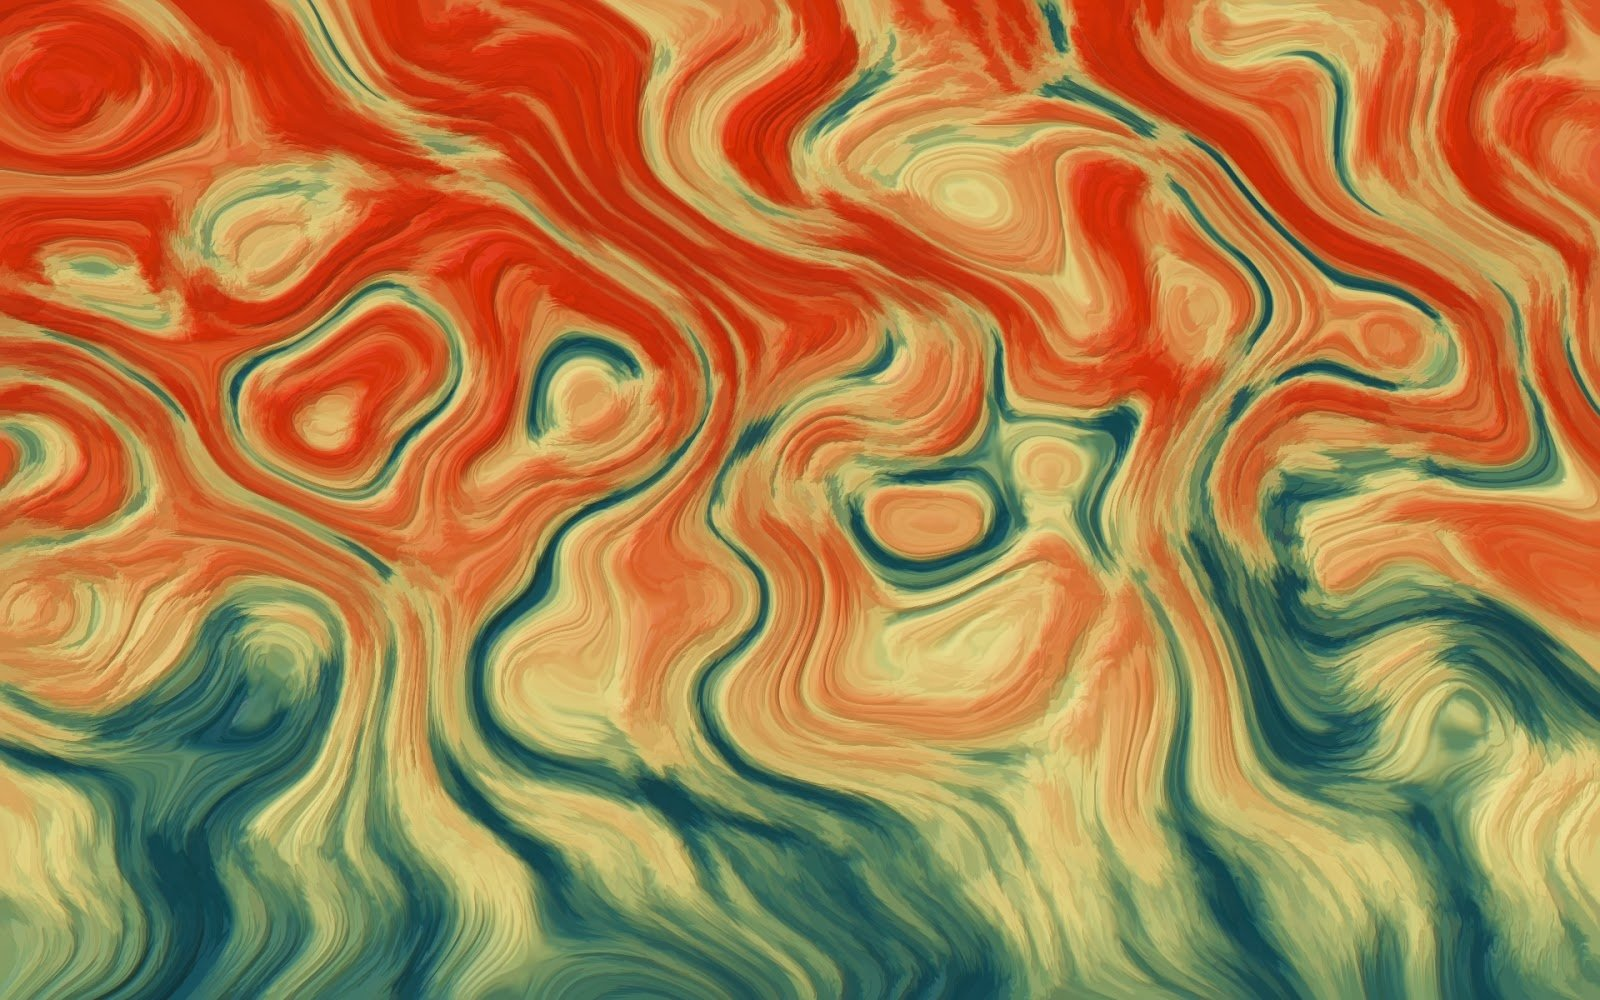 Abstract - Artistic  Texture Orange Red Blue Swirl Colors Wallpaper